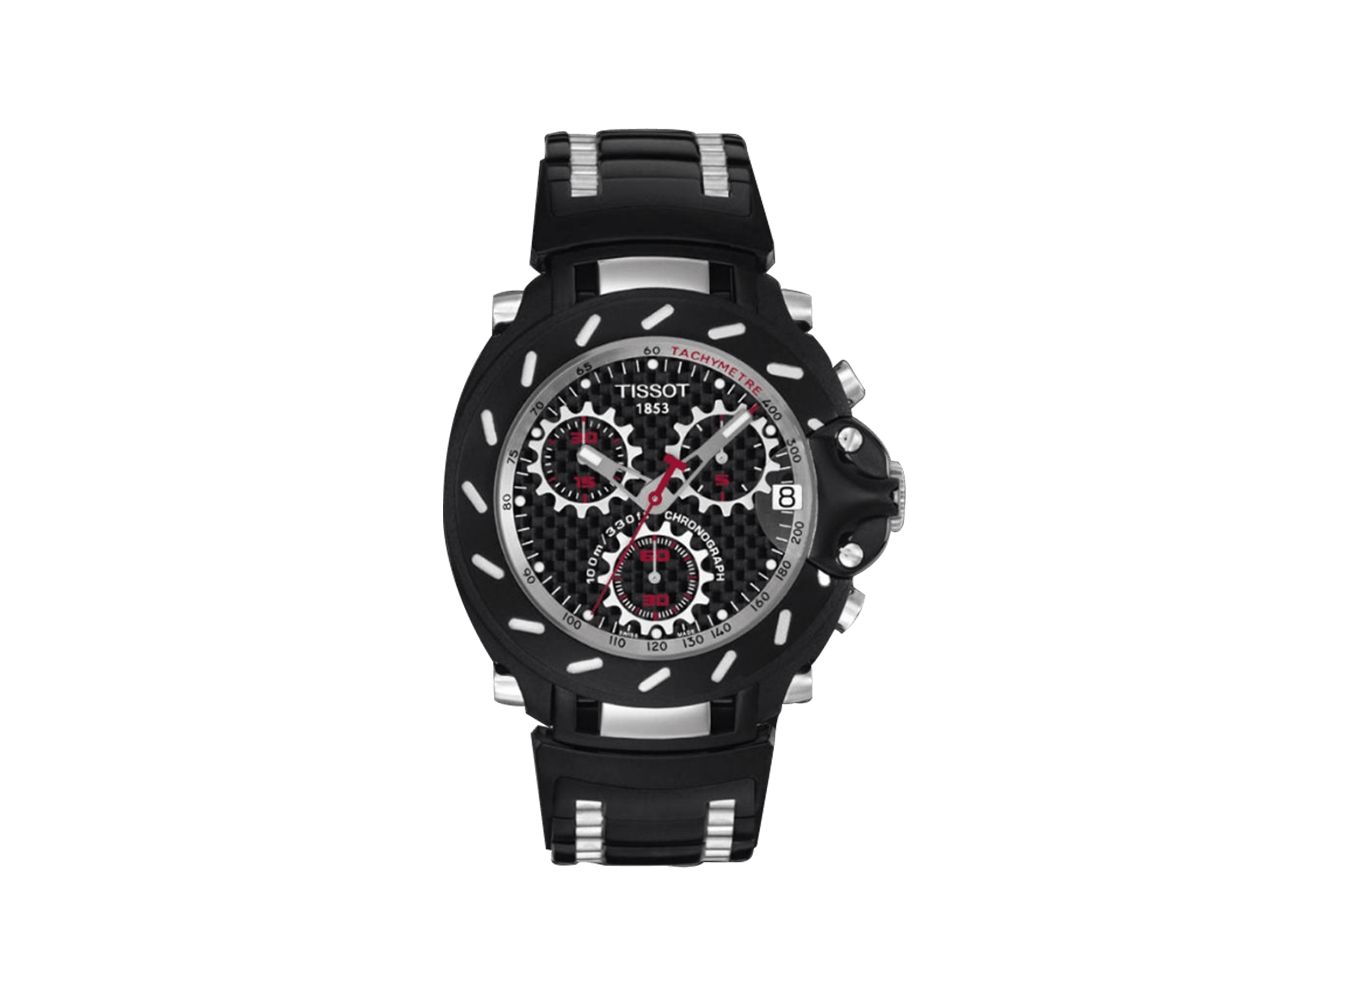 TISSOT T-SPORT T-RACE MEN'S WATCH